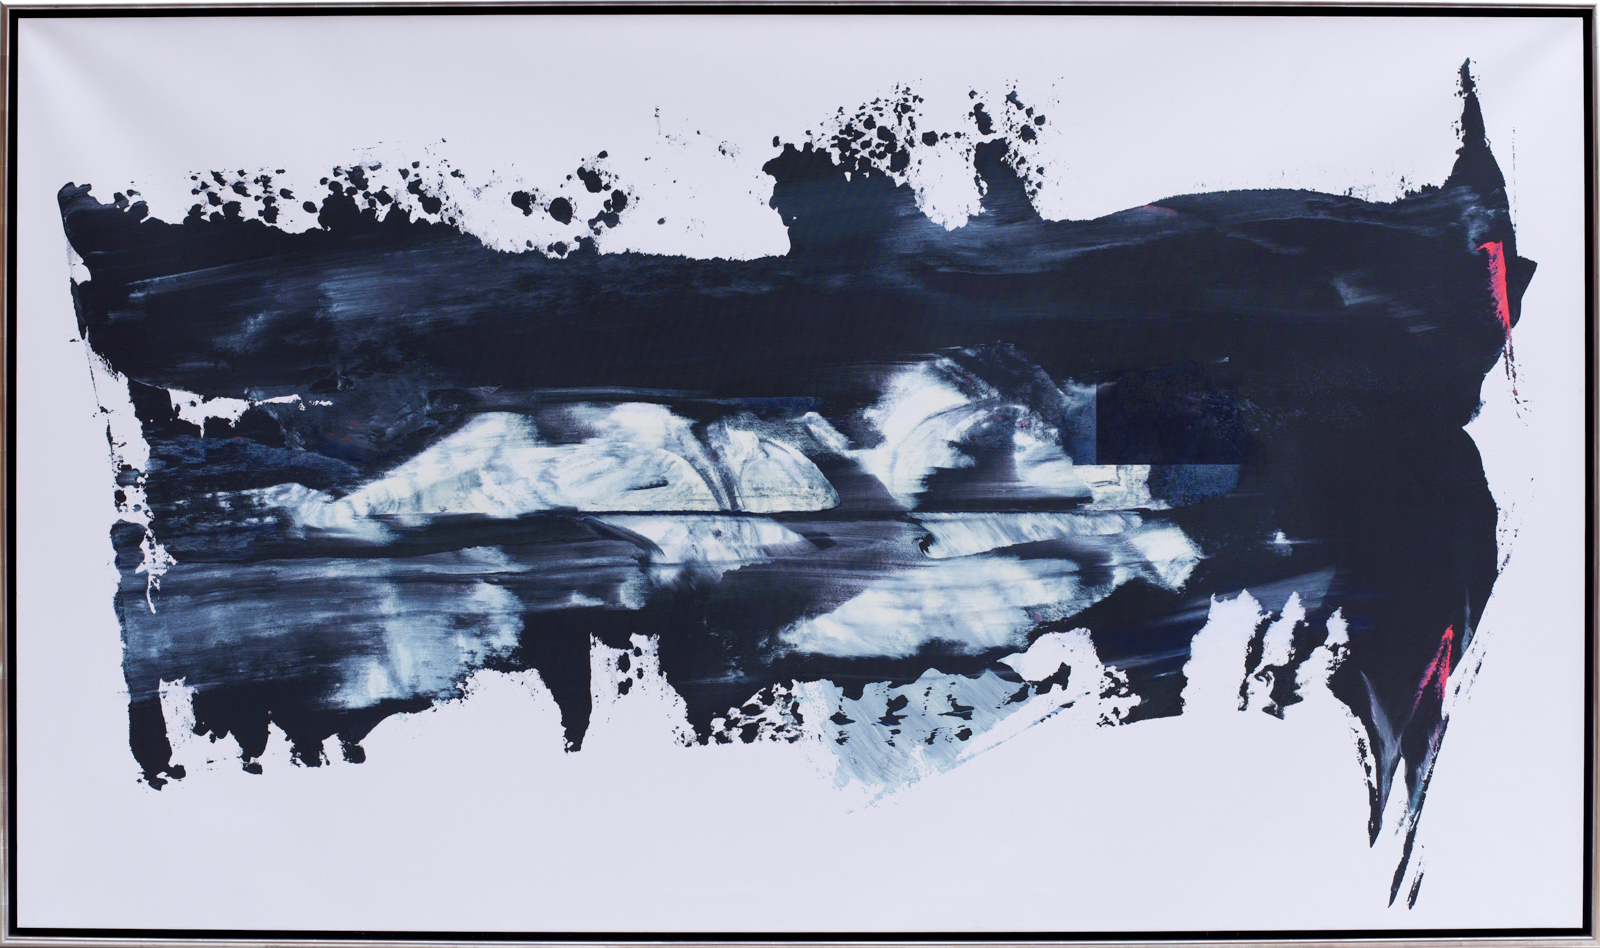 Terry Black | Painting #548